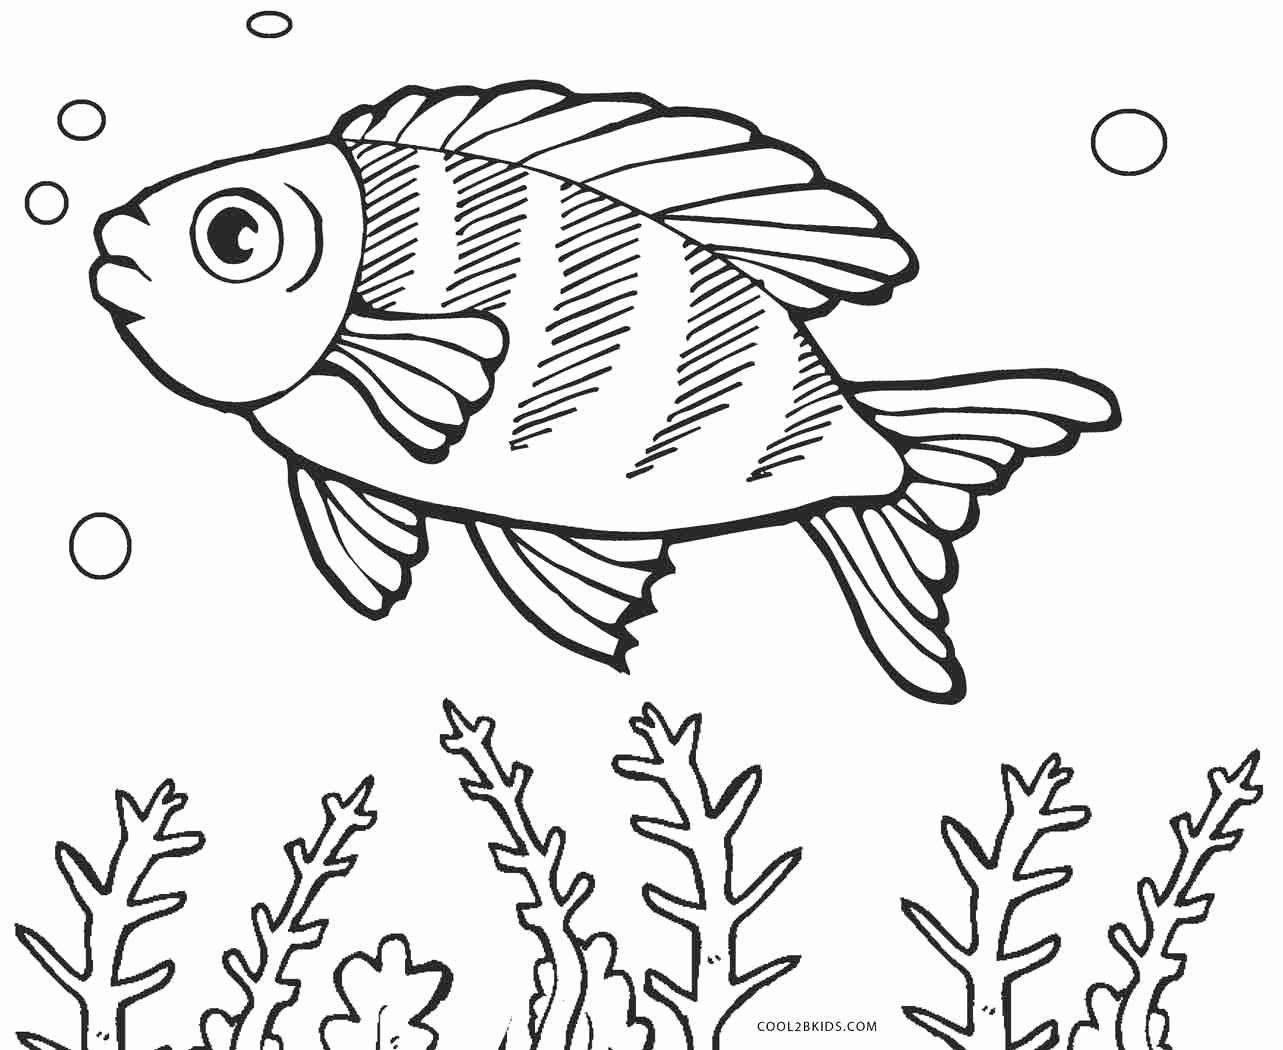 Printable Fish Colouring Pages Awesome Free Printable Fish Coloring Pages for Kids